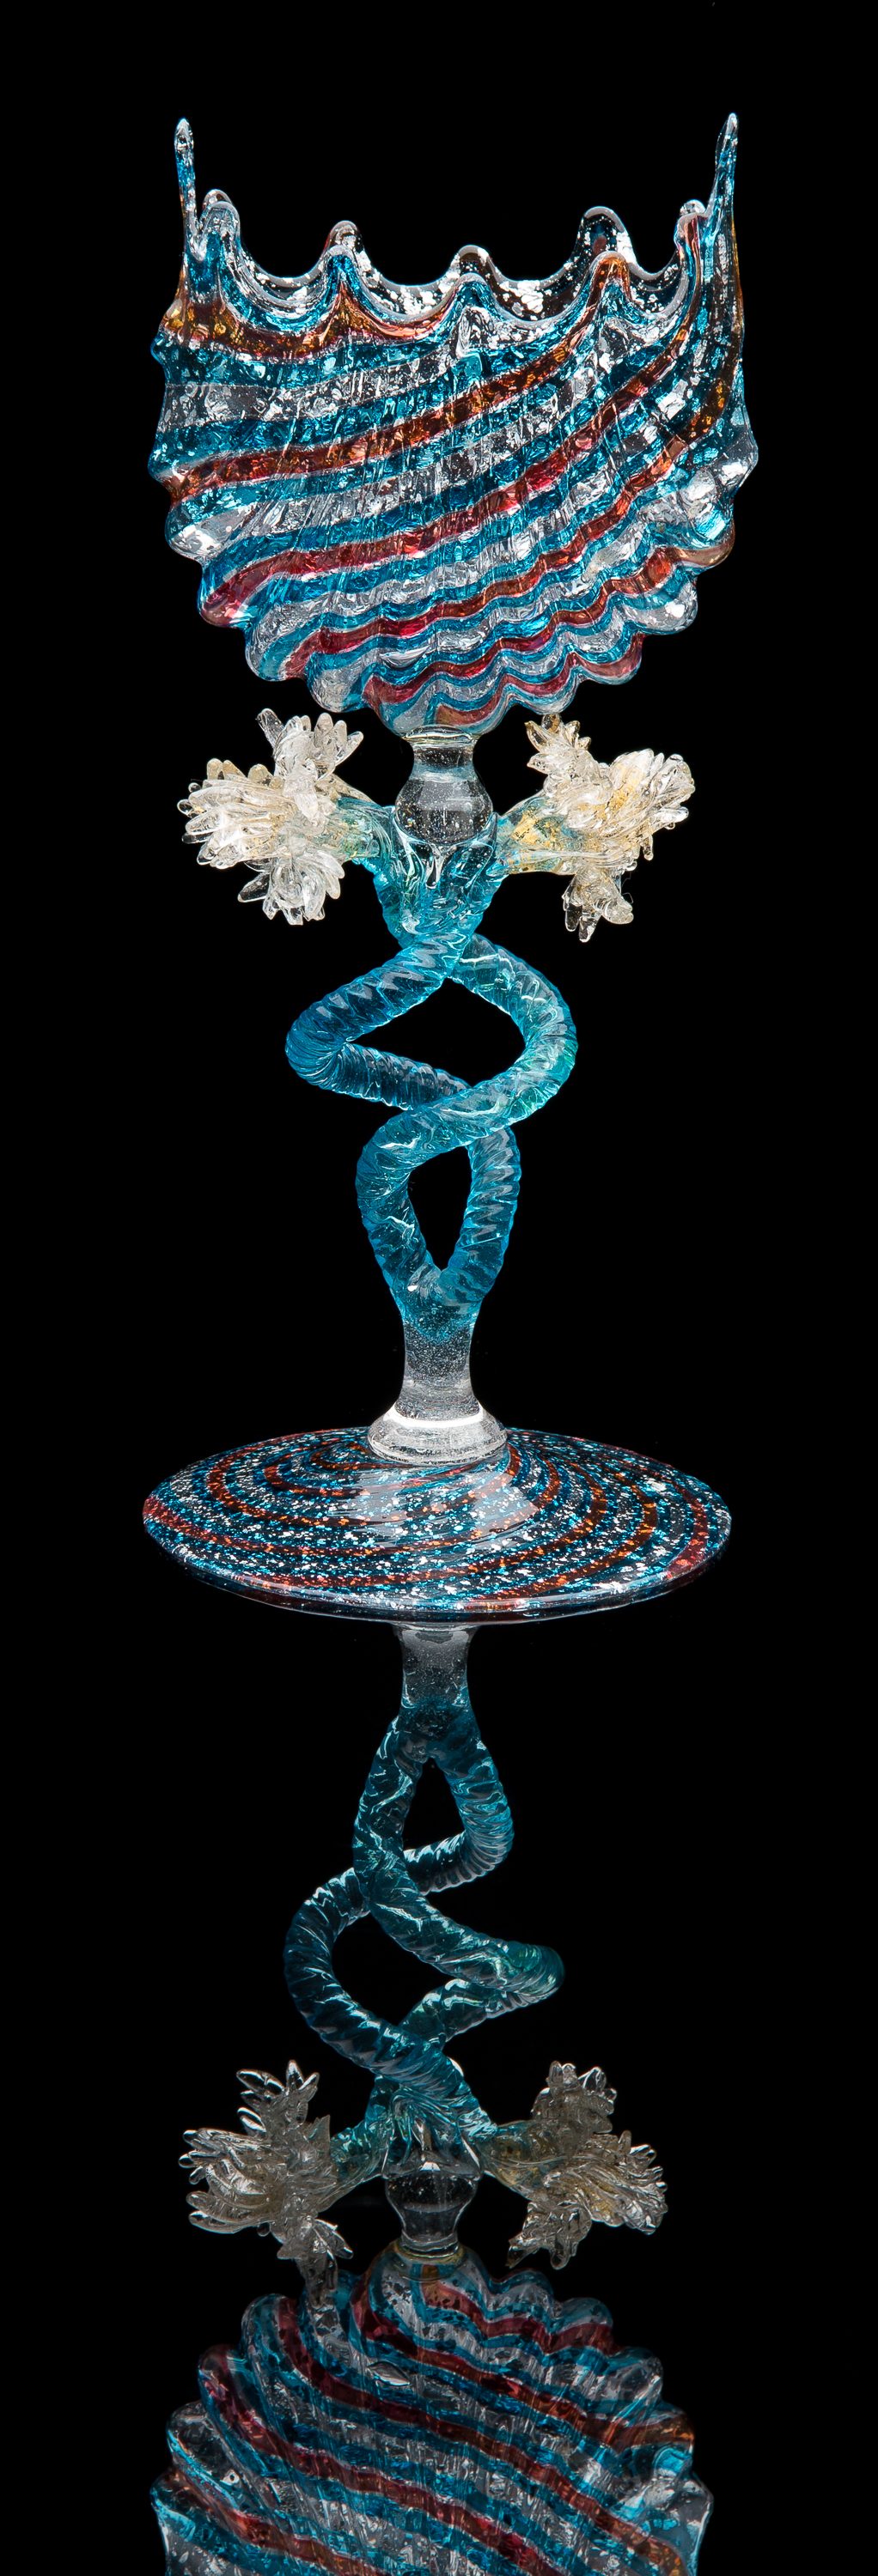 Fratelli Toso,  Large Shell Taza with Ruby and Blue Cane Decoration  (1885, glass, 8.75 inches), VV.1105